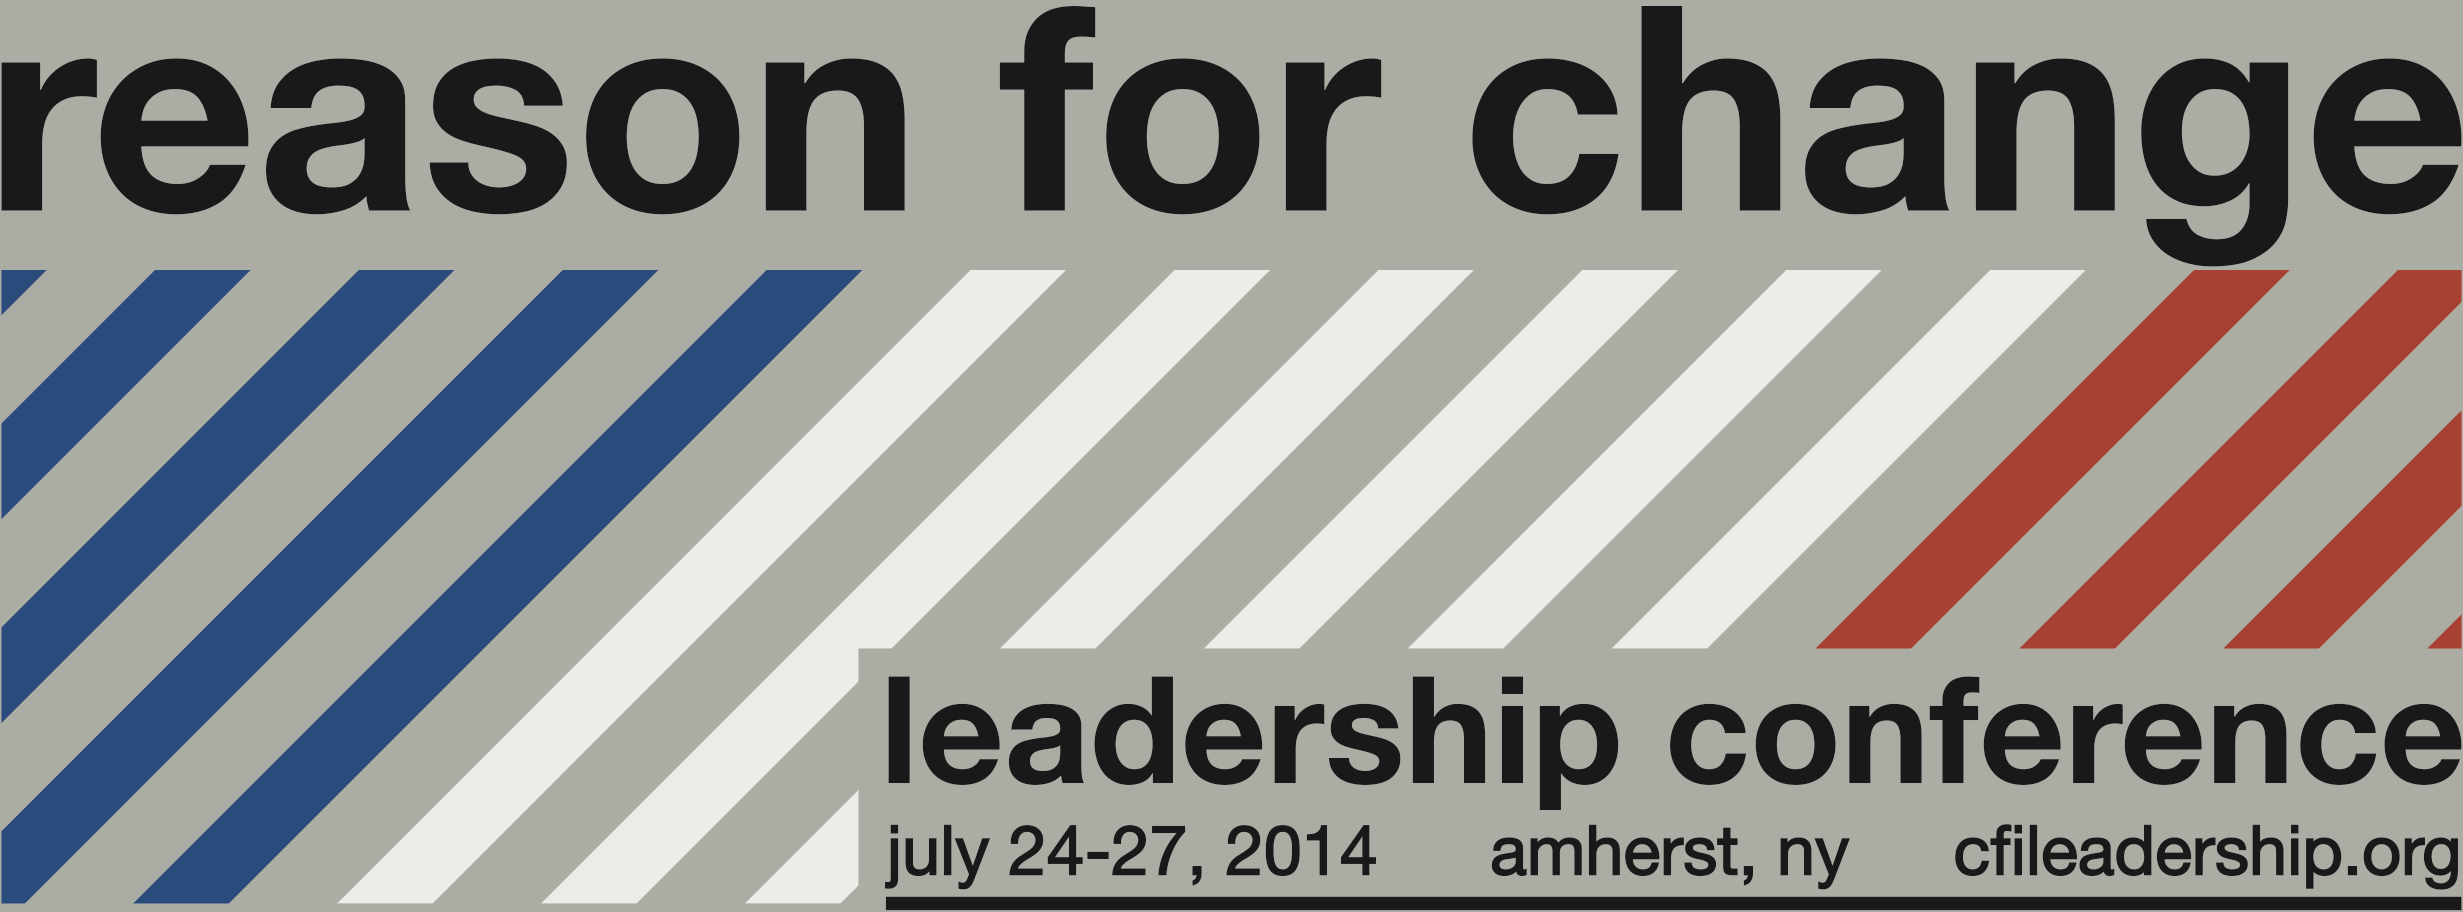 reason for change: leadership conference - july 24-27, 2014 - amherst, ny - cfileadership.org